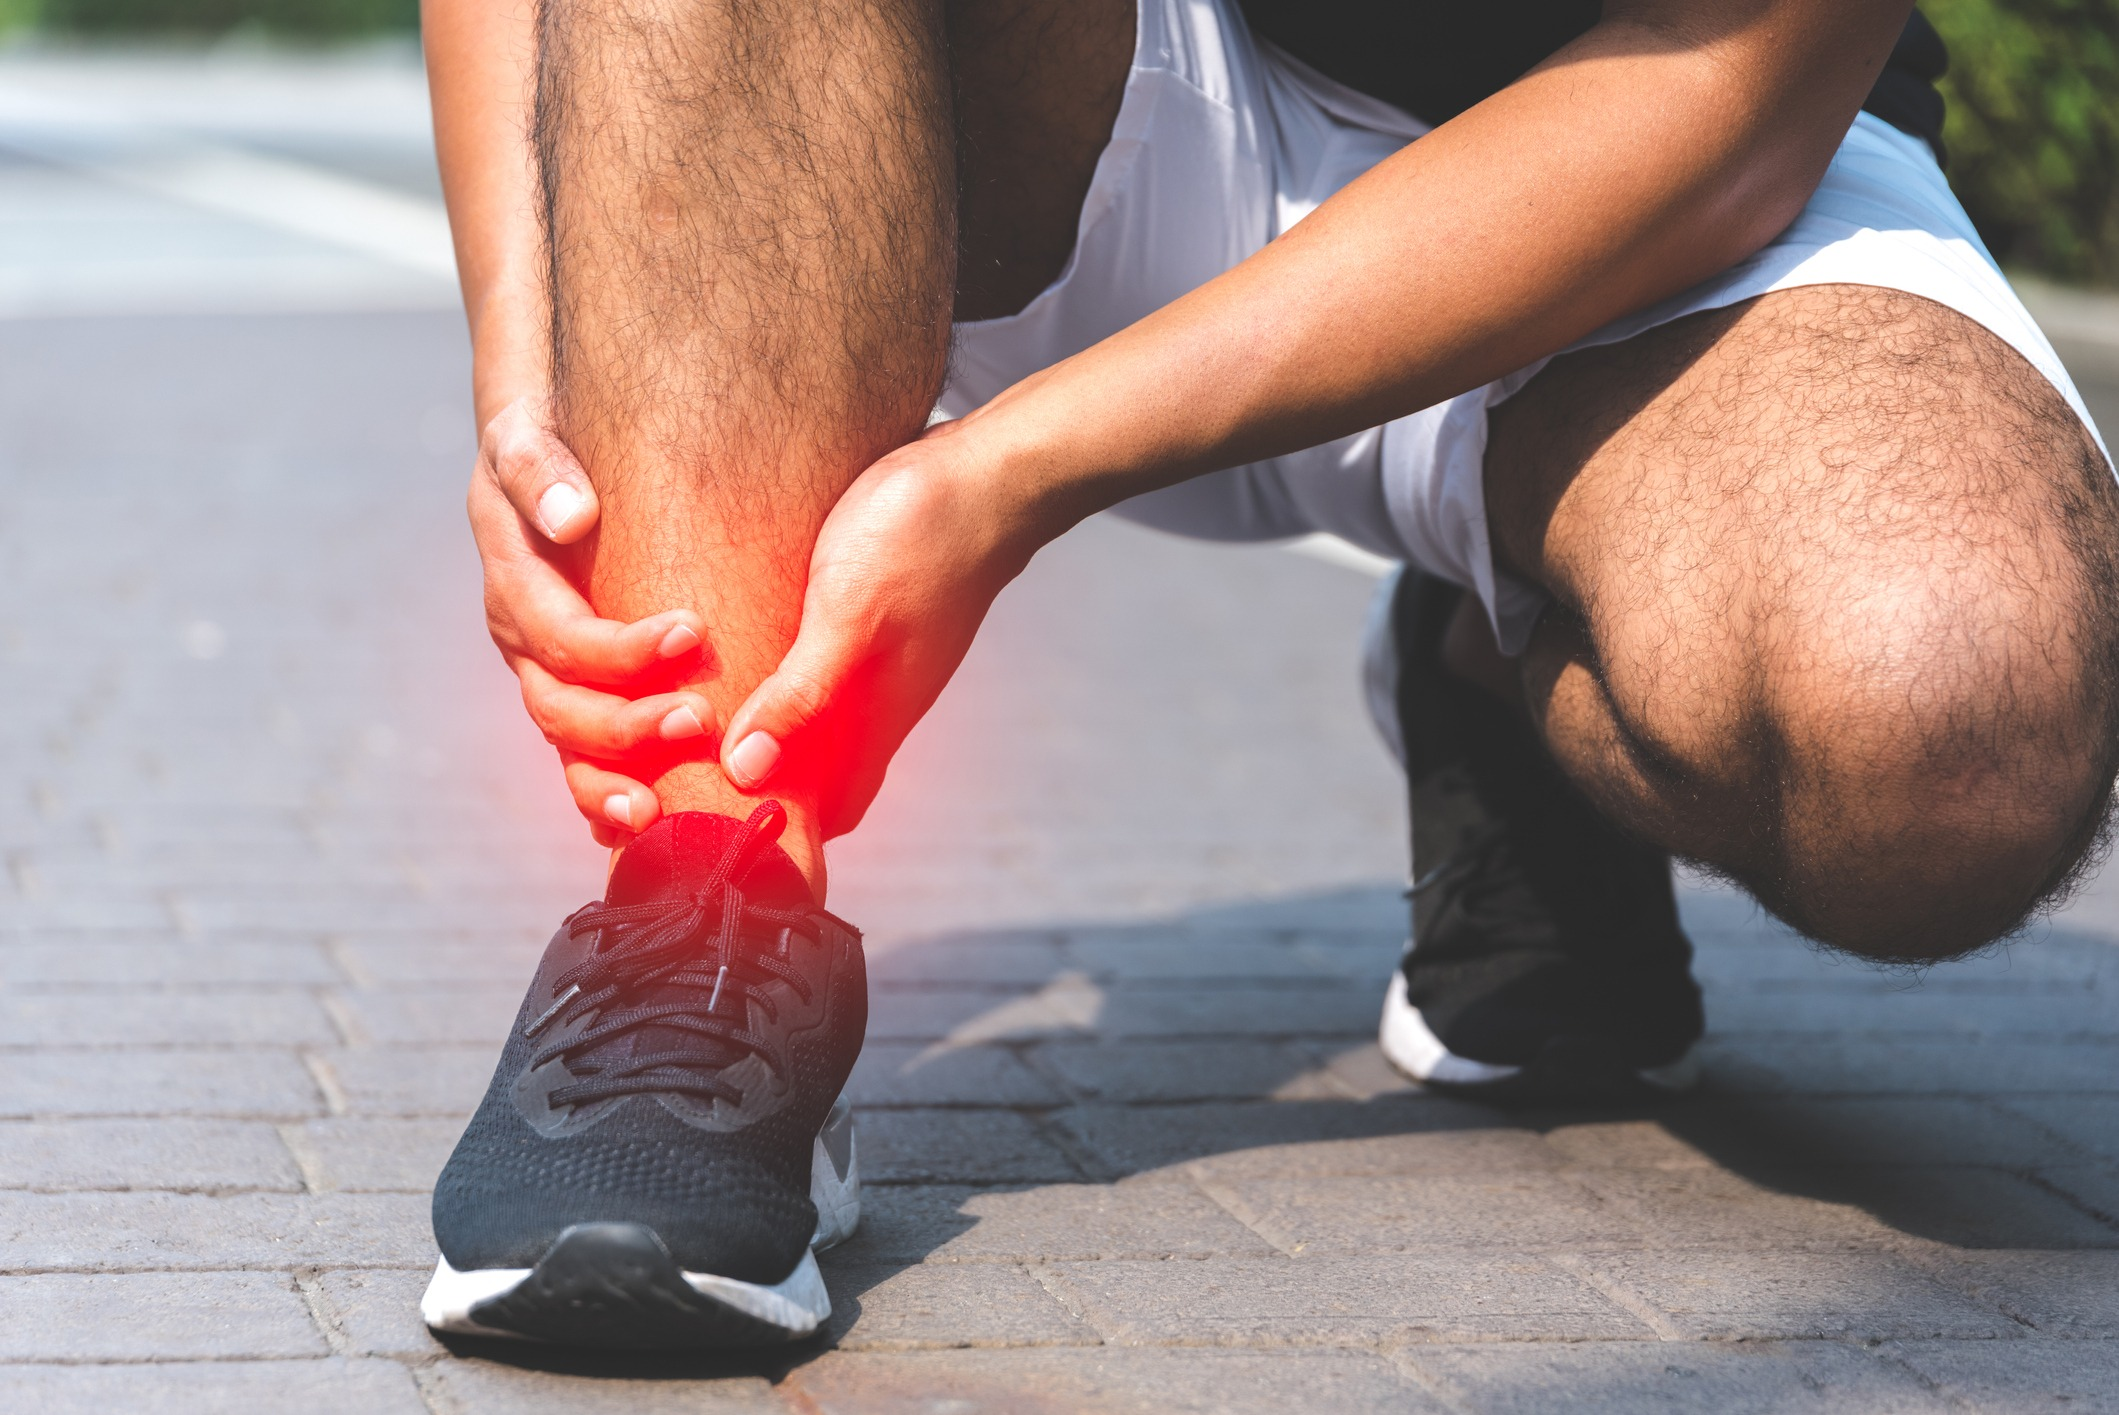 Do you have a stress fracture? Imaging can provide the answer.